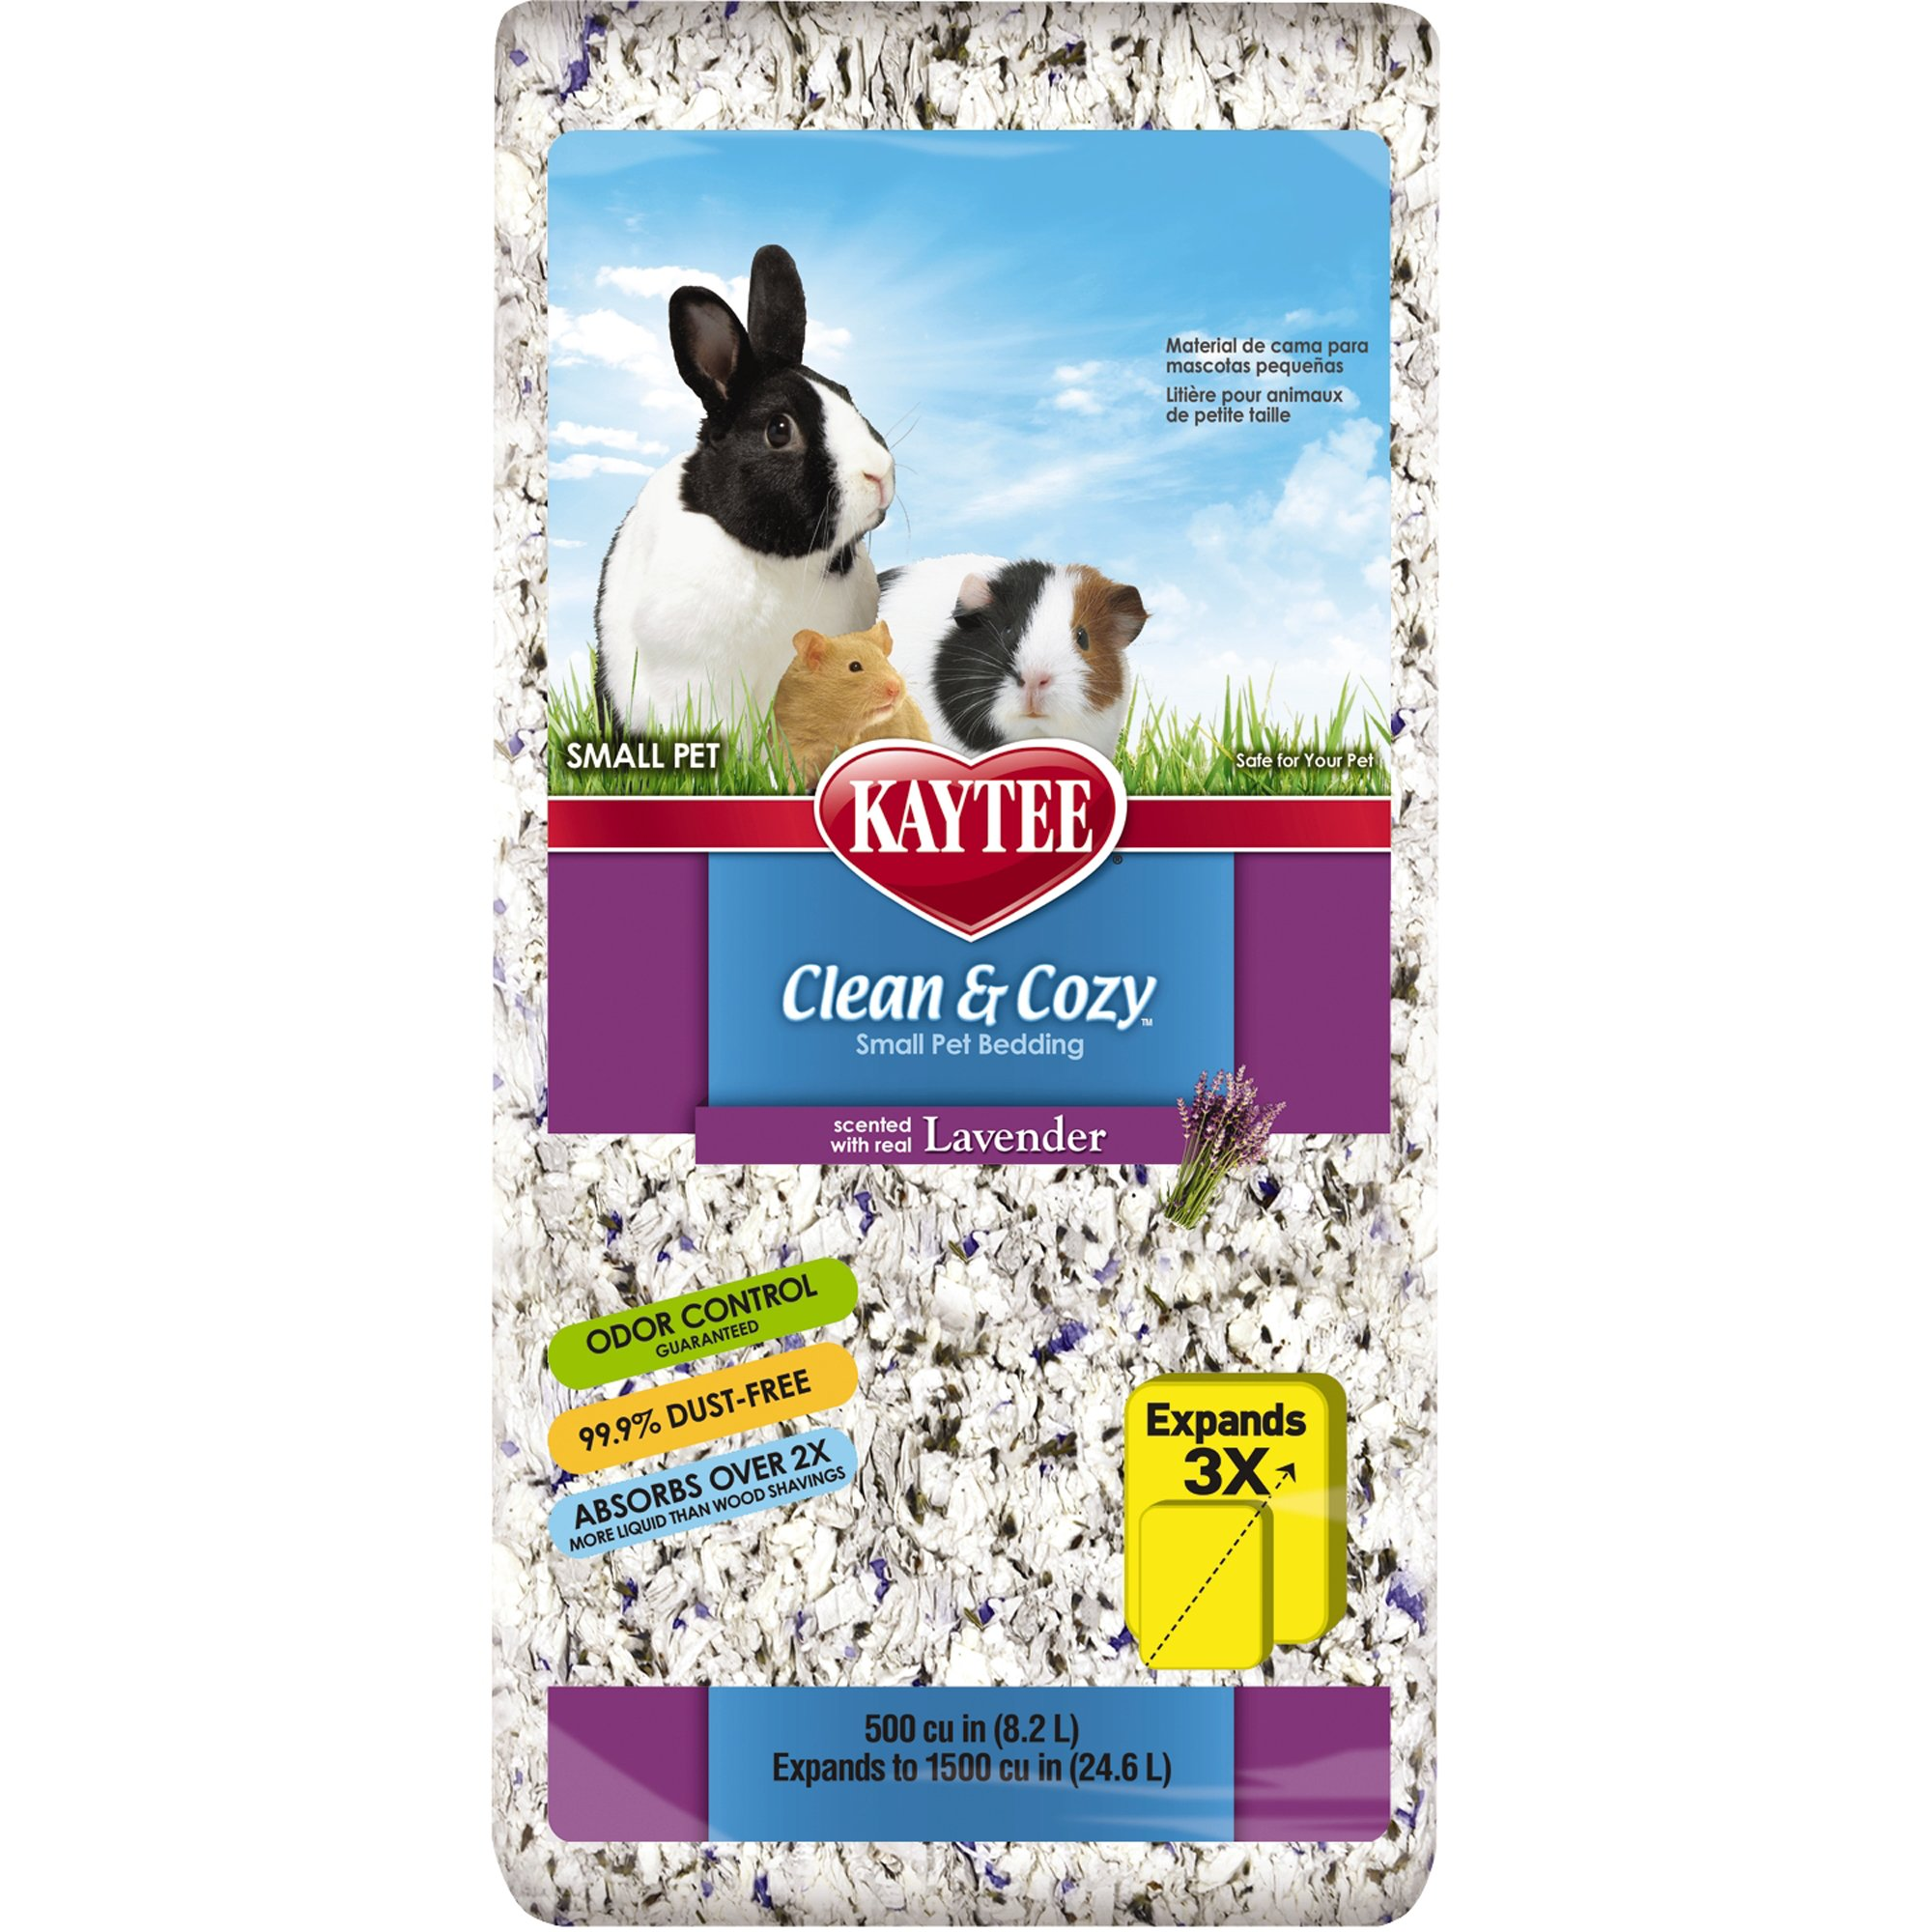 kaytee clean & cozy lavender scented small animal bedding | petco